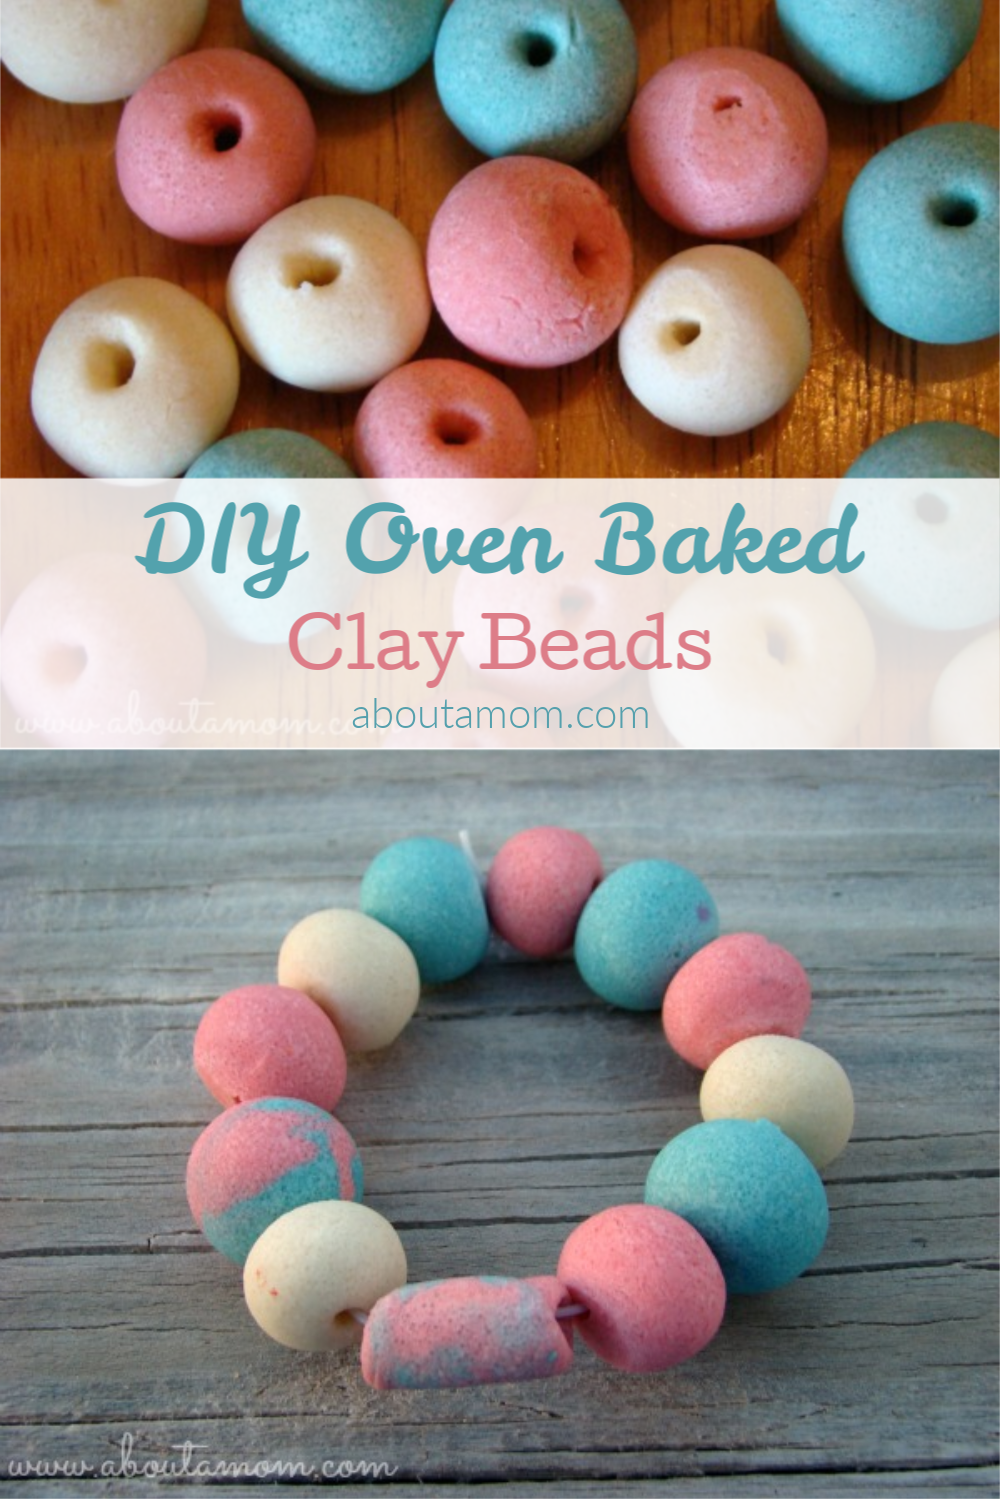 Are you feeling the pressure to come up with activities to keep the kids busy this summer?These DIY oven baked clay beads are a terrific summertime boredom buster, and is the perfect activity for a hot day when you want to stay indoors.